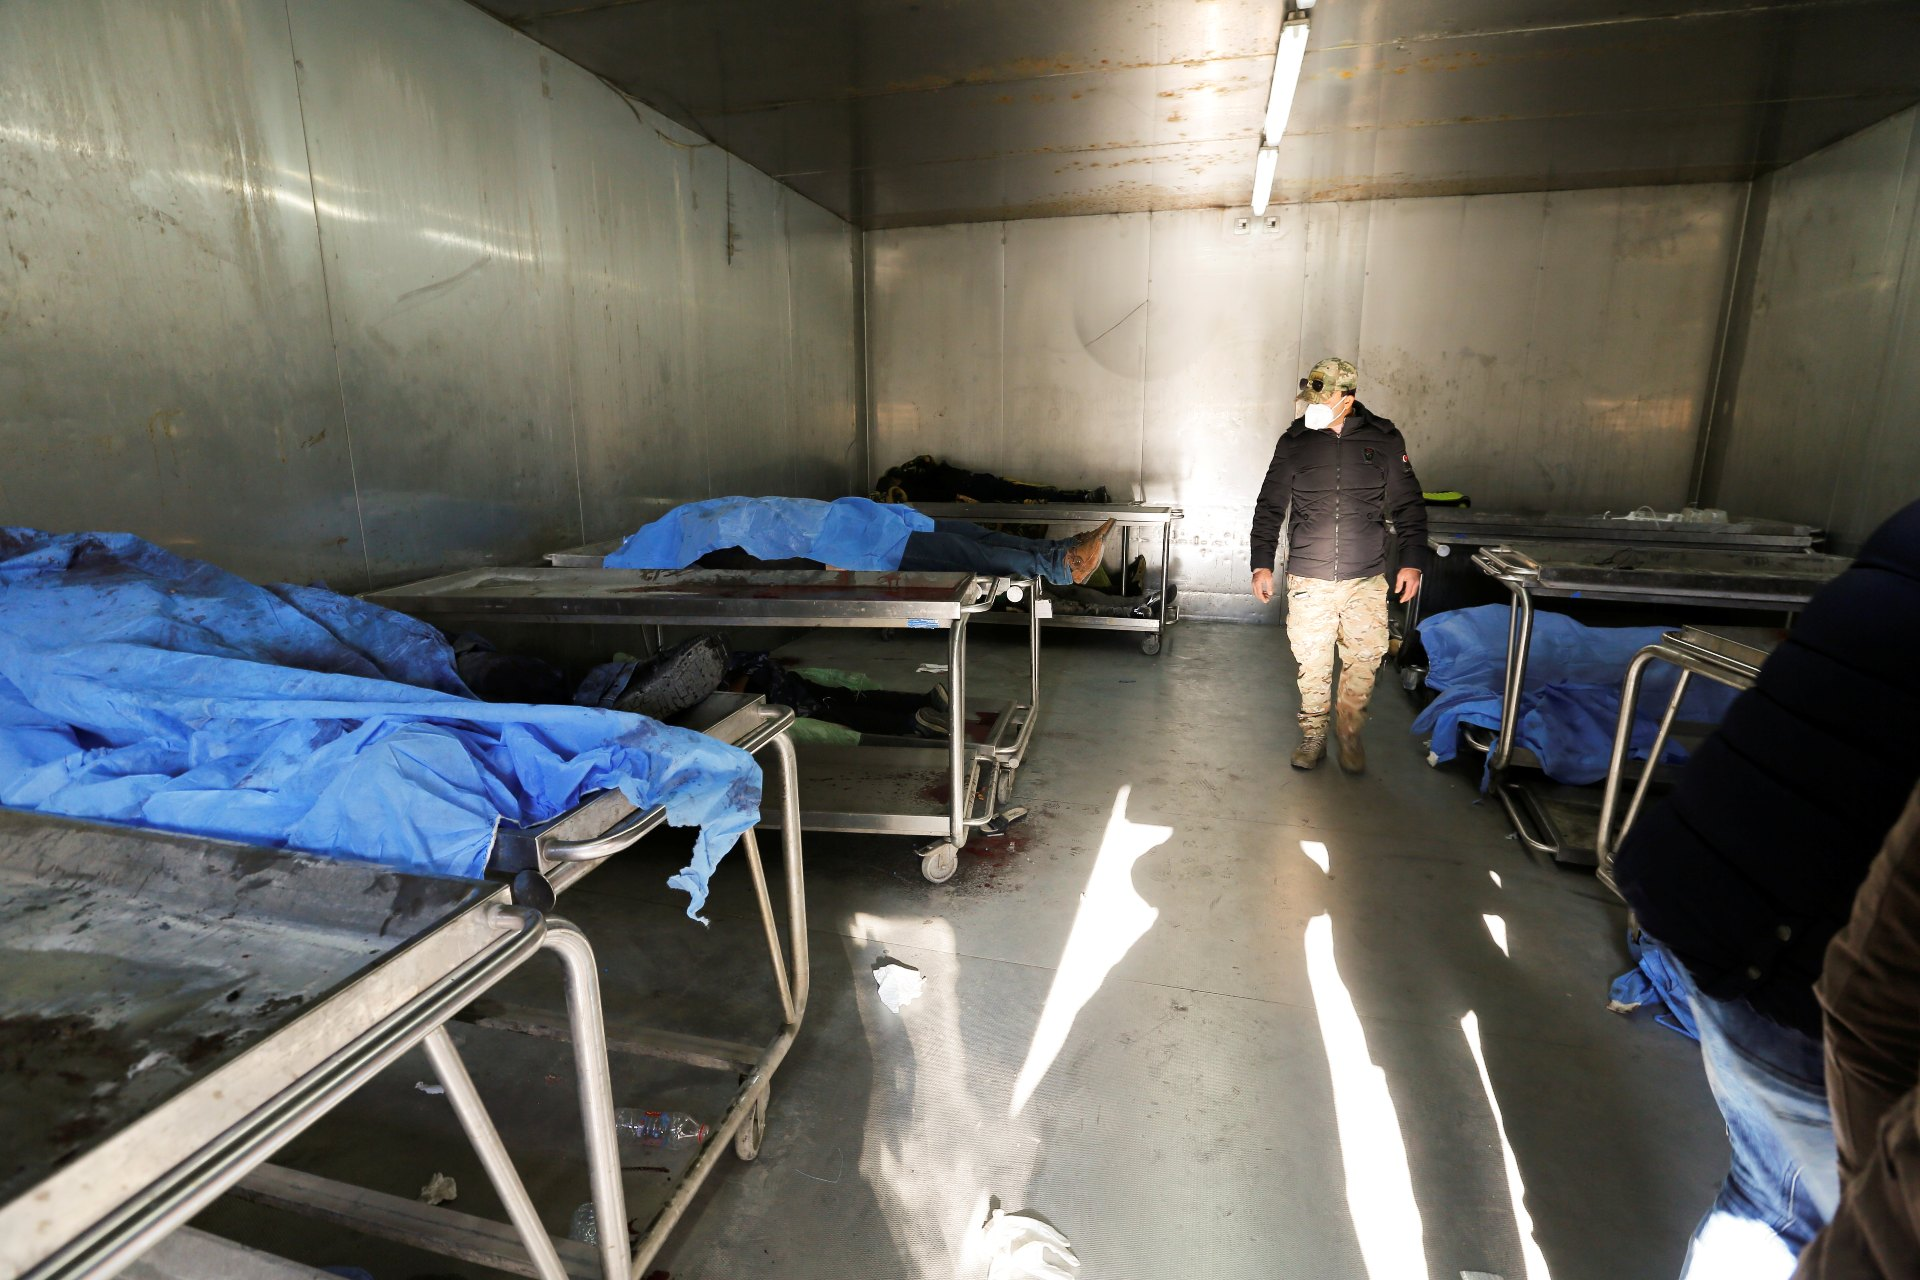 A man looks at the covered bodies of people who were killed during a twin suicide bombing attack in a central Baghdad market, at the al-Kindi hospital morgue in Baghdad (Reuters)